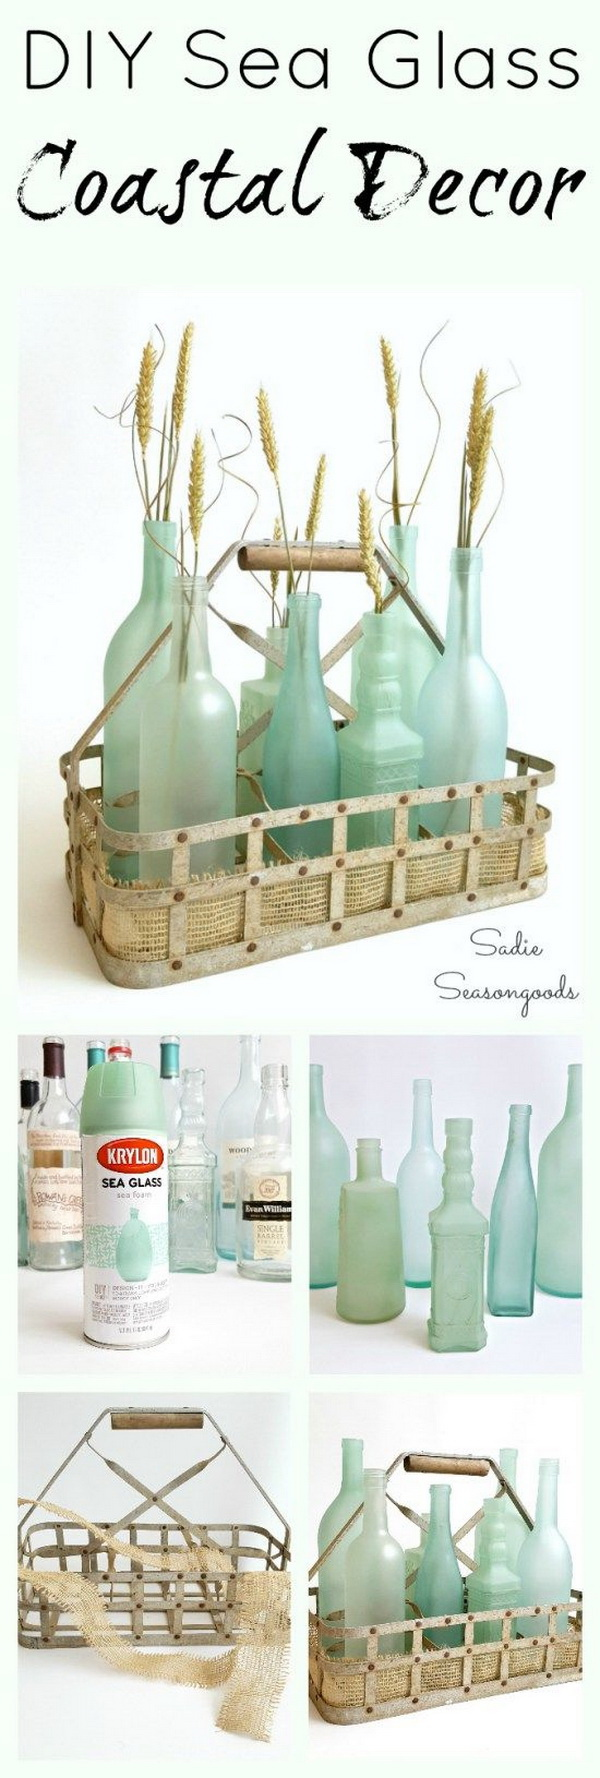 DIY Sea Glass Coastal Decor. Transform the simple wine bottles into stunning, gorgeous sea glass bottles with the frost etch effect paint! Super easy DIY upcycle craft to celebrate summer!